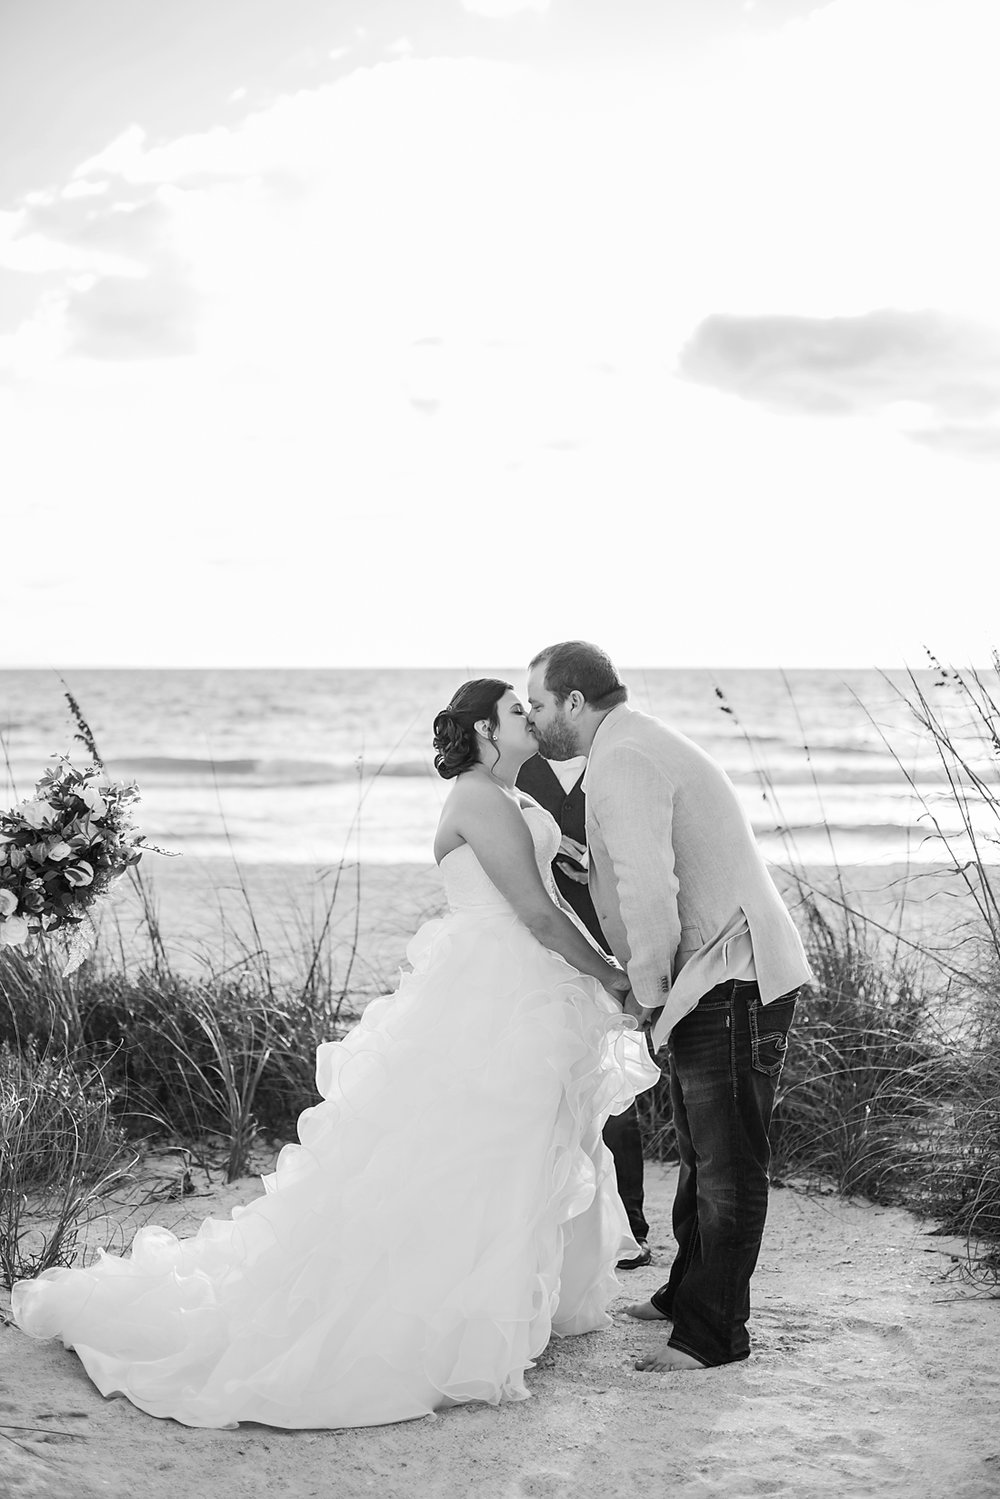 Bailey + Chalin - Anna Maria Island Wedding Photographer - Destination Wedding Photography - Emily & Co. Photography - Beach Wedding Photography (26).jpg